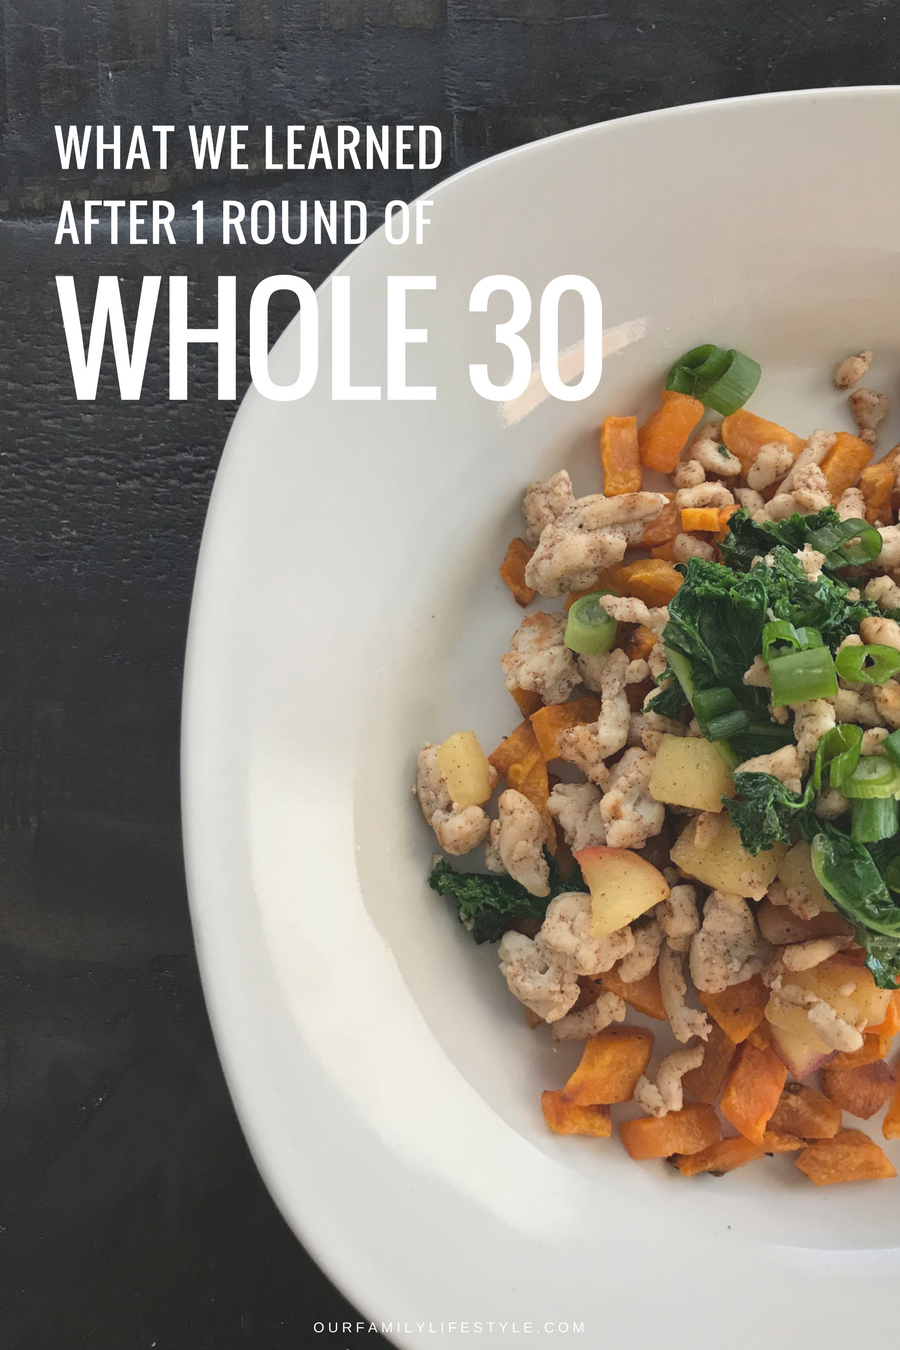 What We Learned After 1 Round of Whole 30